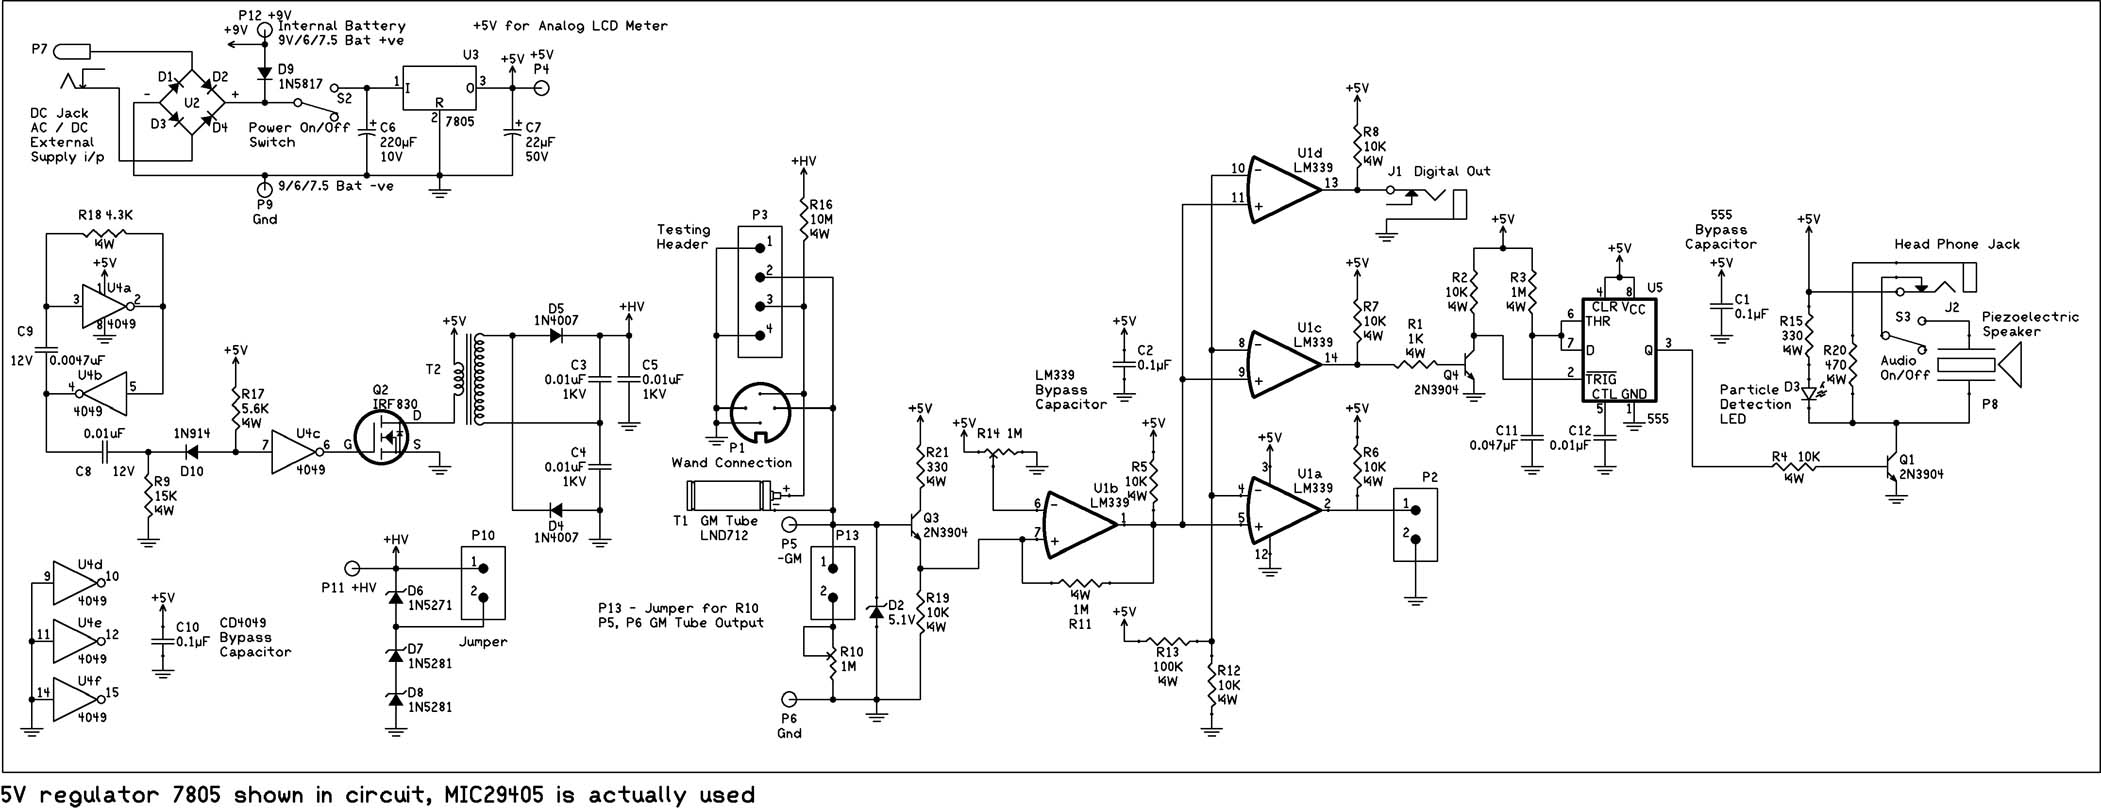 Simple Oscillator Pipe Locator Circuit Diagram Nerdkits Geiger Counter Schematic Help Basic Electronics